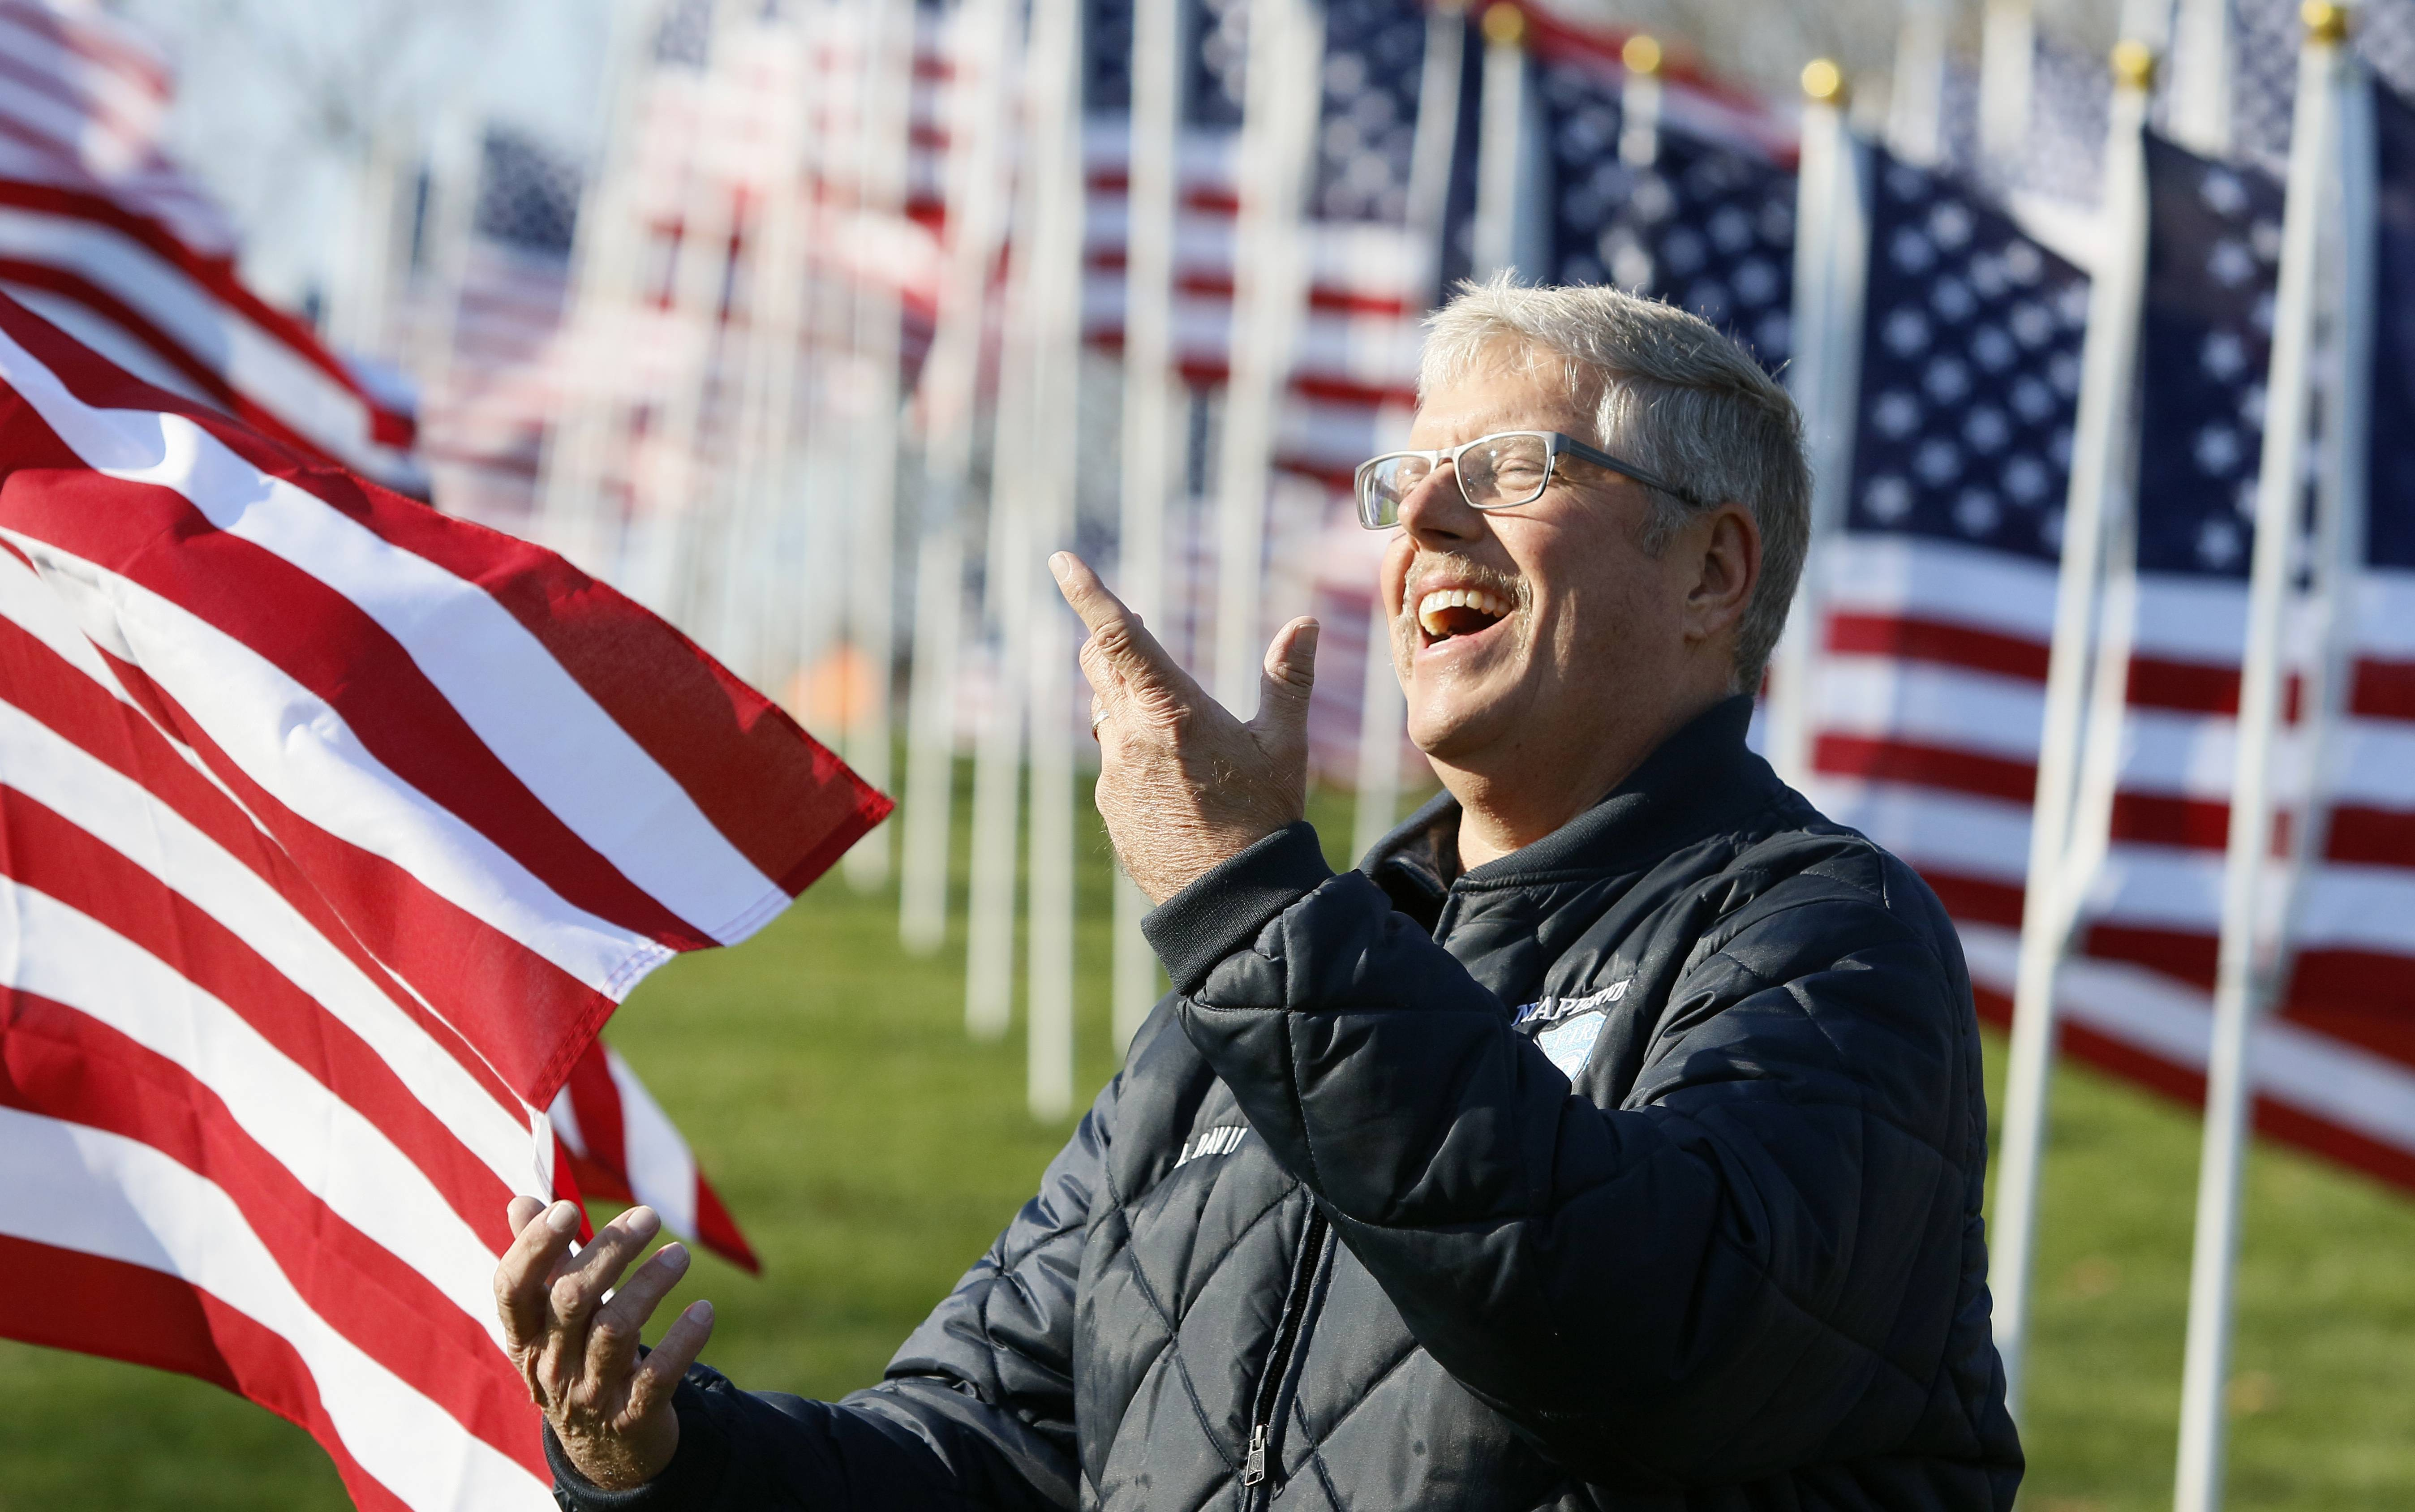 Naperville firefighter Kent David celebrates his last day on the job, after 24.5 years of service, at the Healing Field of Honor at Rotary Hill. David and fellow firefighters attended the Naperville Veterans Day ceremony.